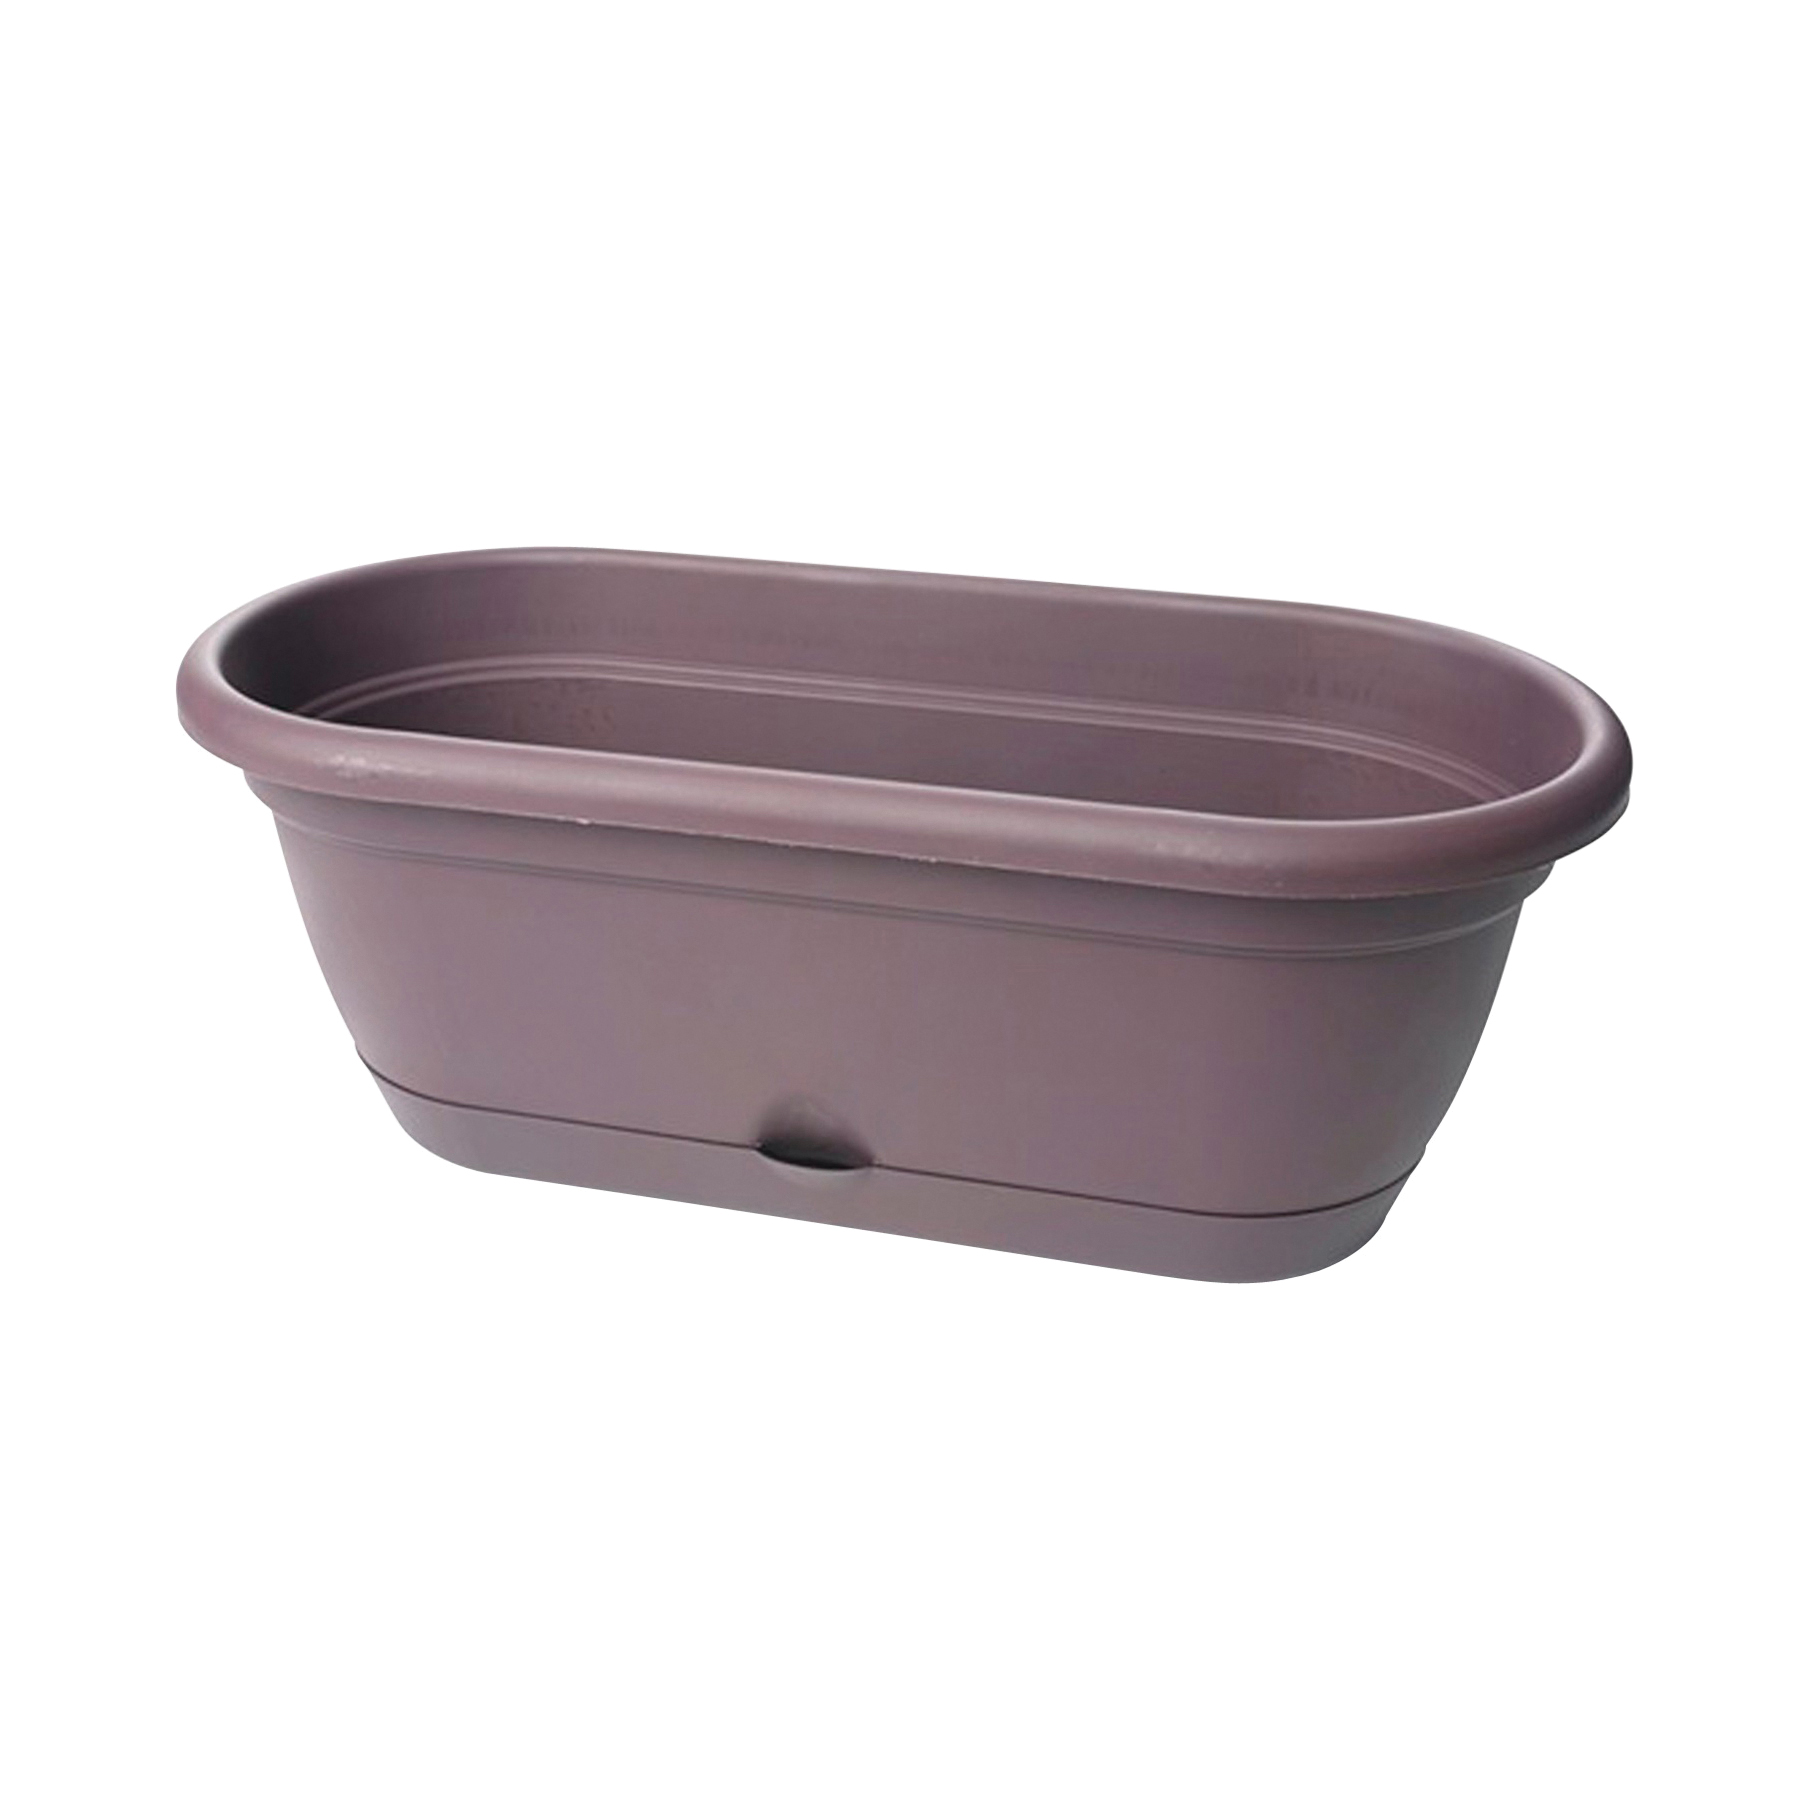 Picture of Bloem Lucca LWB1856 Window Box Planter, 7-1/2 in W, 9.13 in D, Box, Polypropylene, Exotica